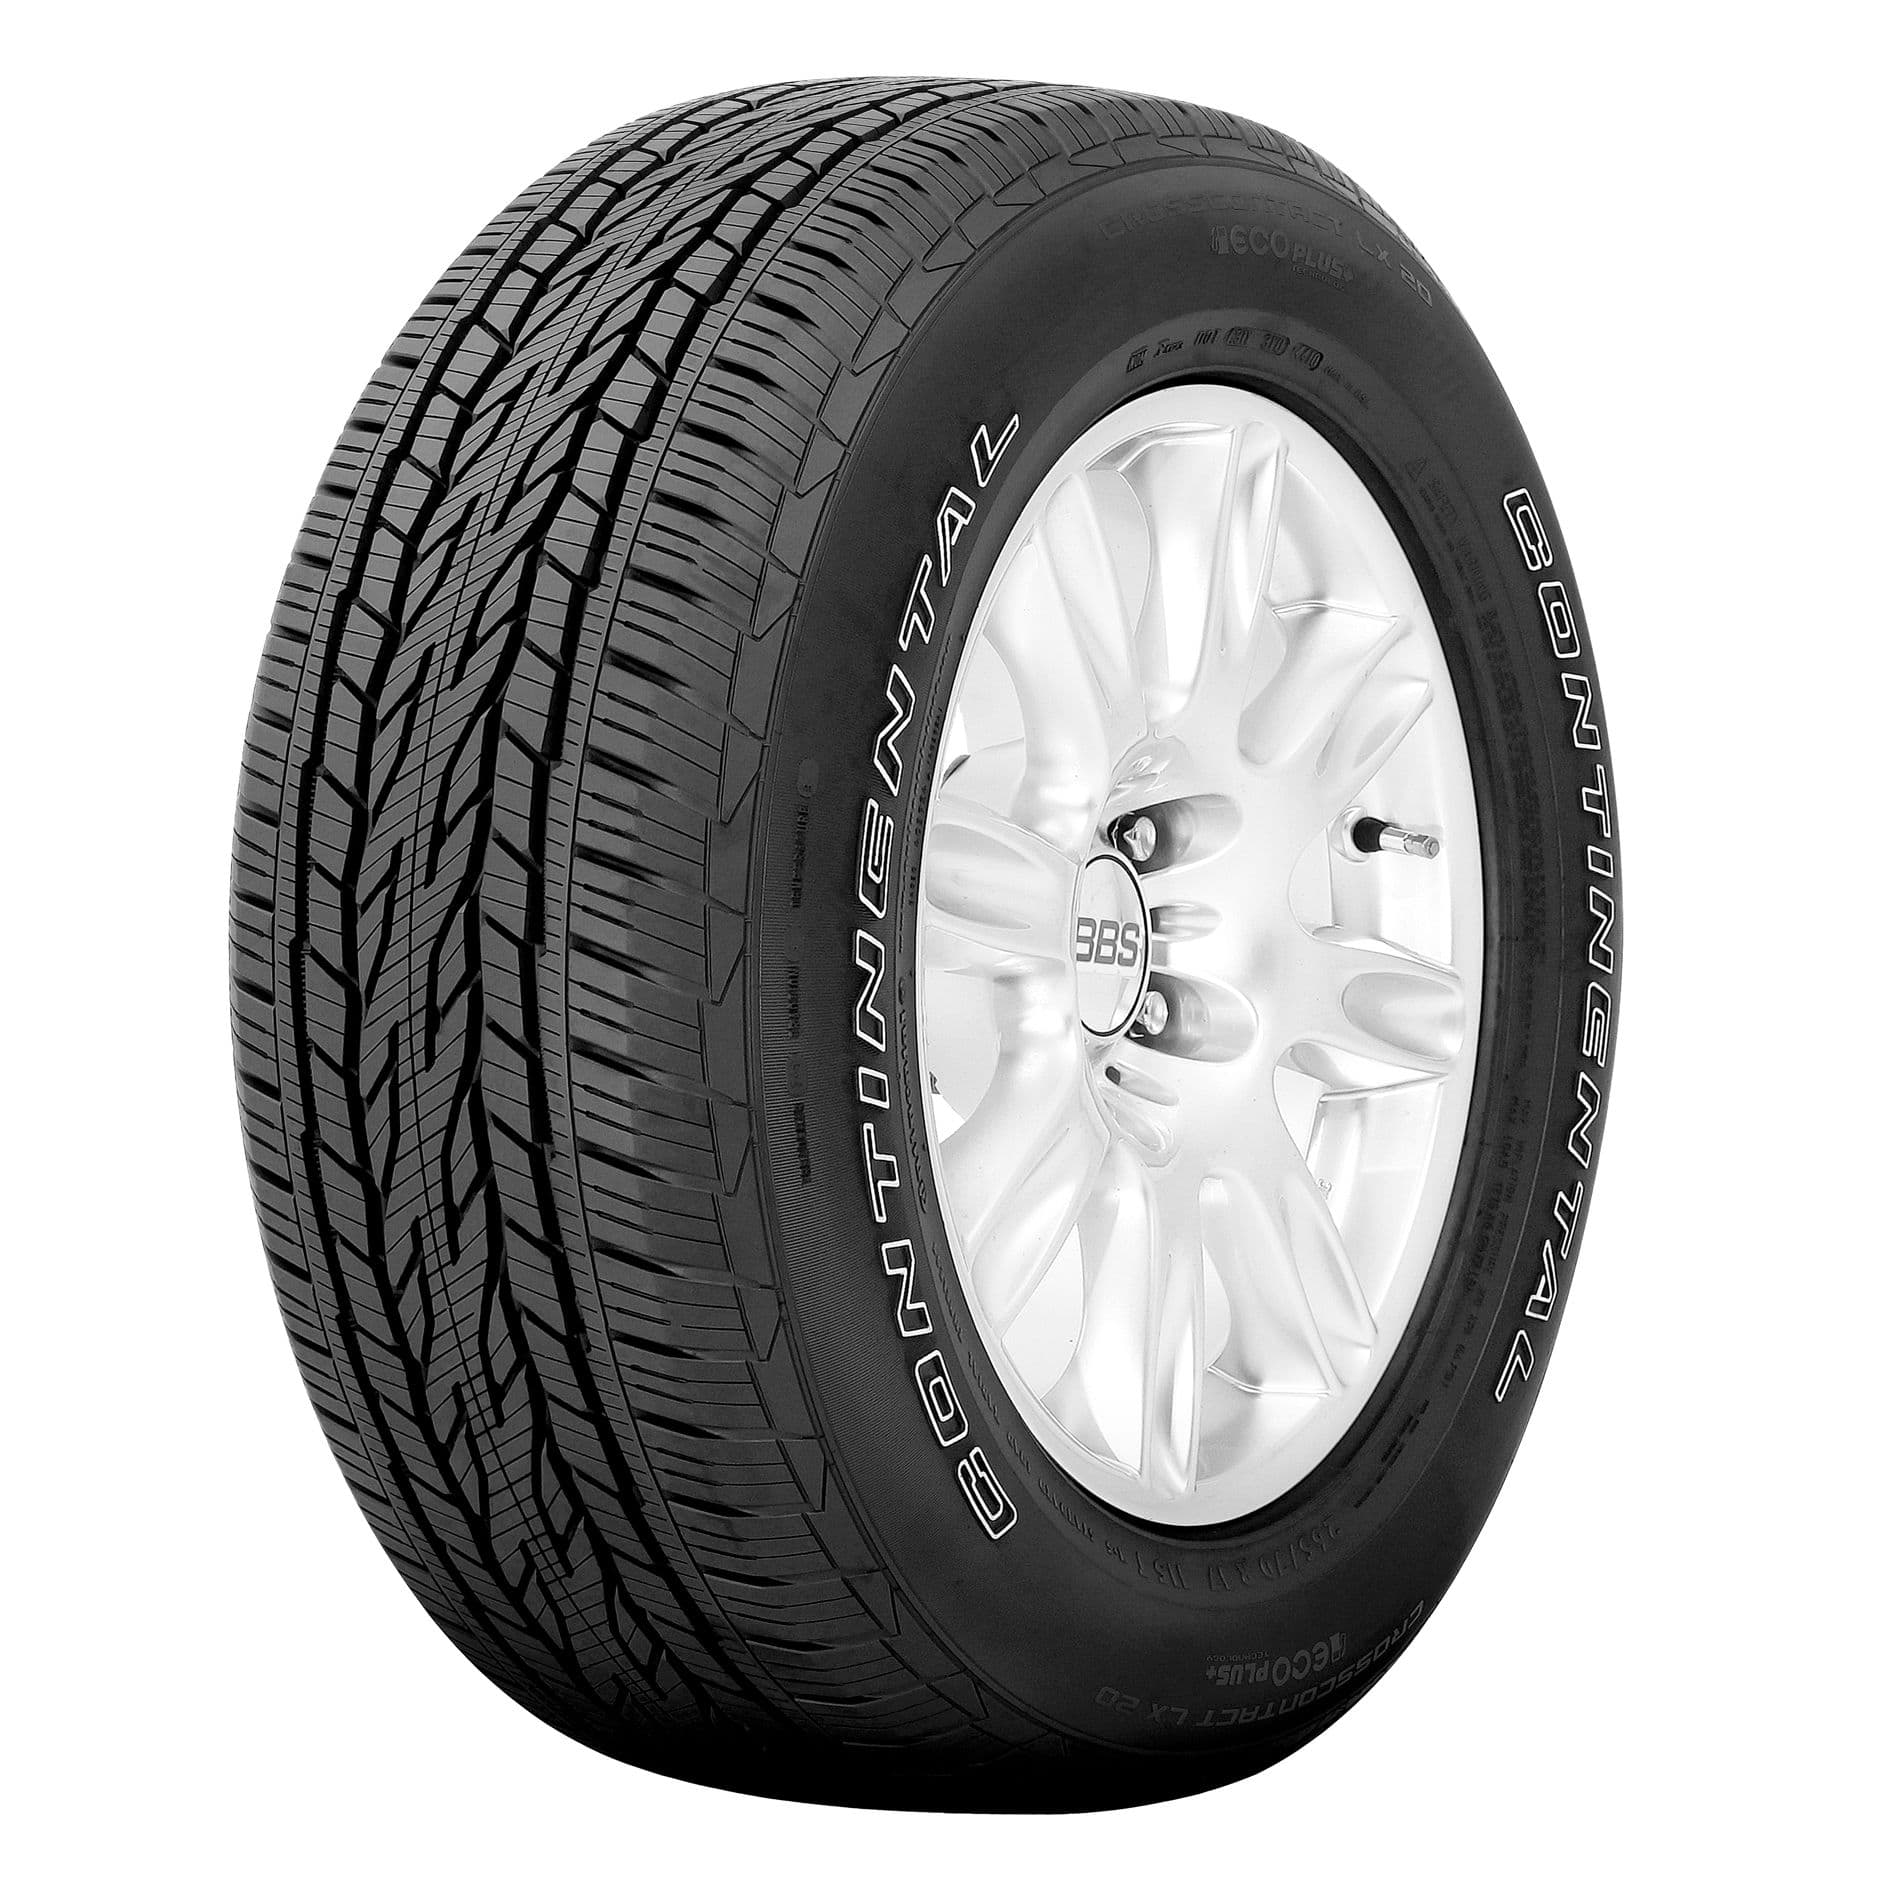 Sears Tires $100 back in points + SYW Coupons + Additional $70 off Michelin Tires